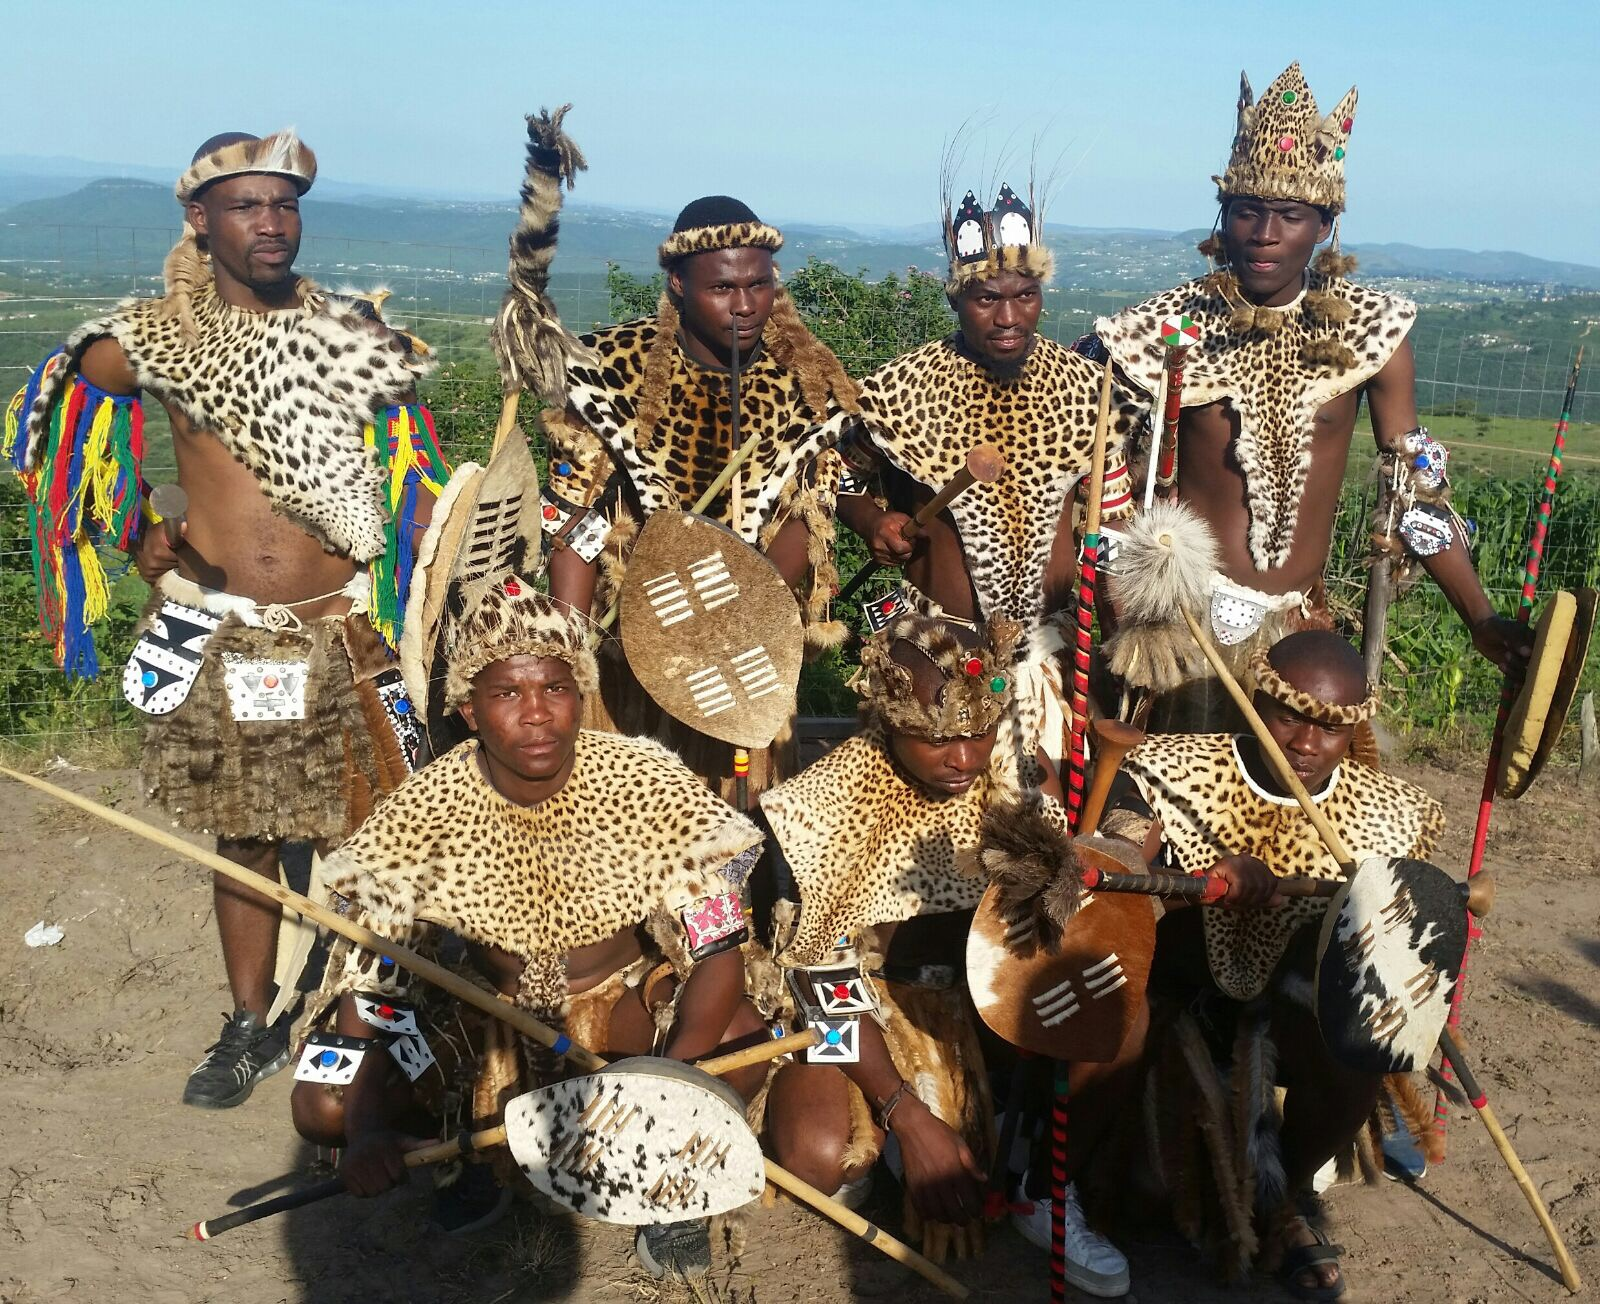 Traditional zulu warrior outfit